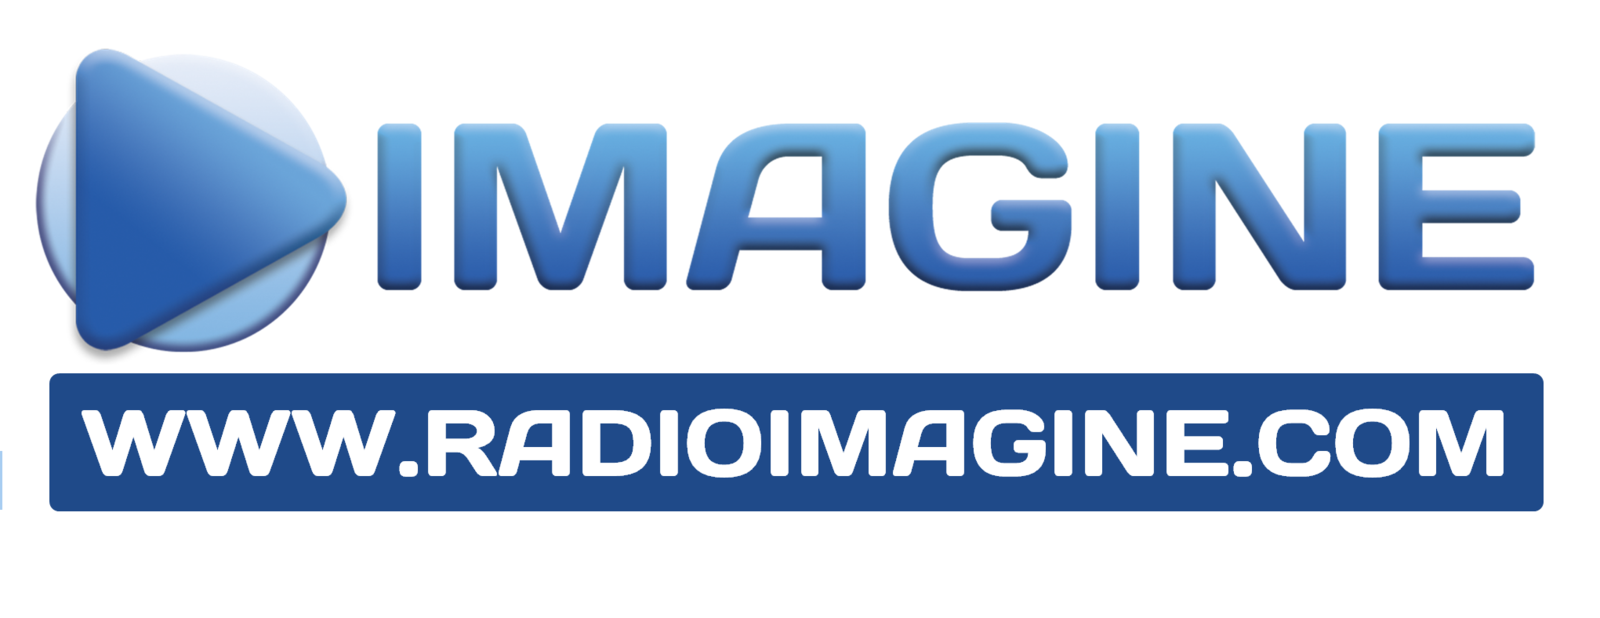 Radio Imagine - Animation : Agenda Cinema du 25-05-2016